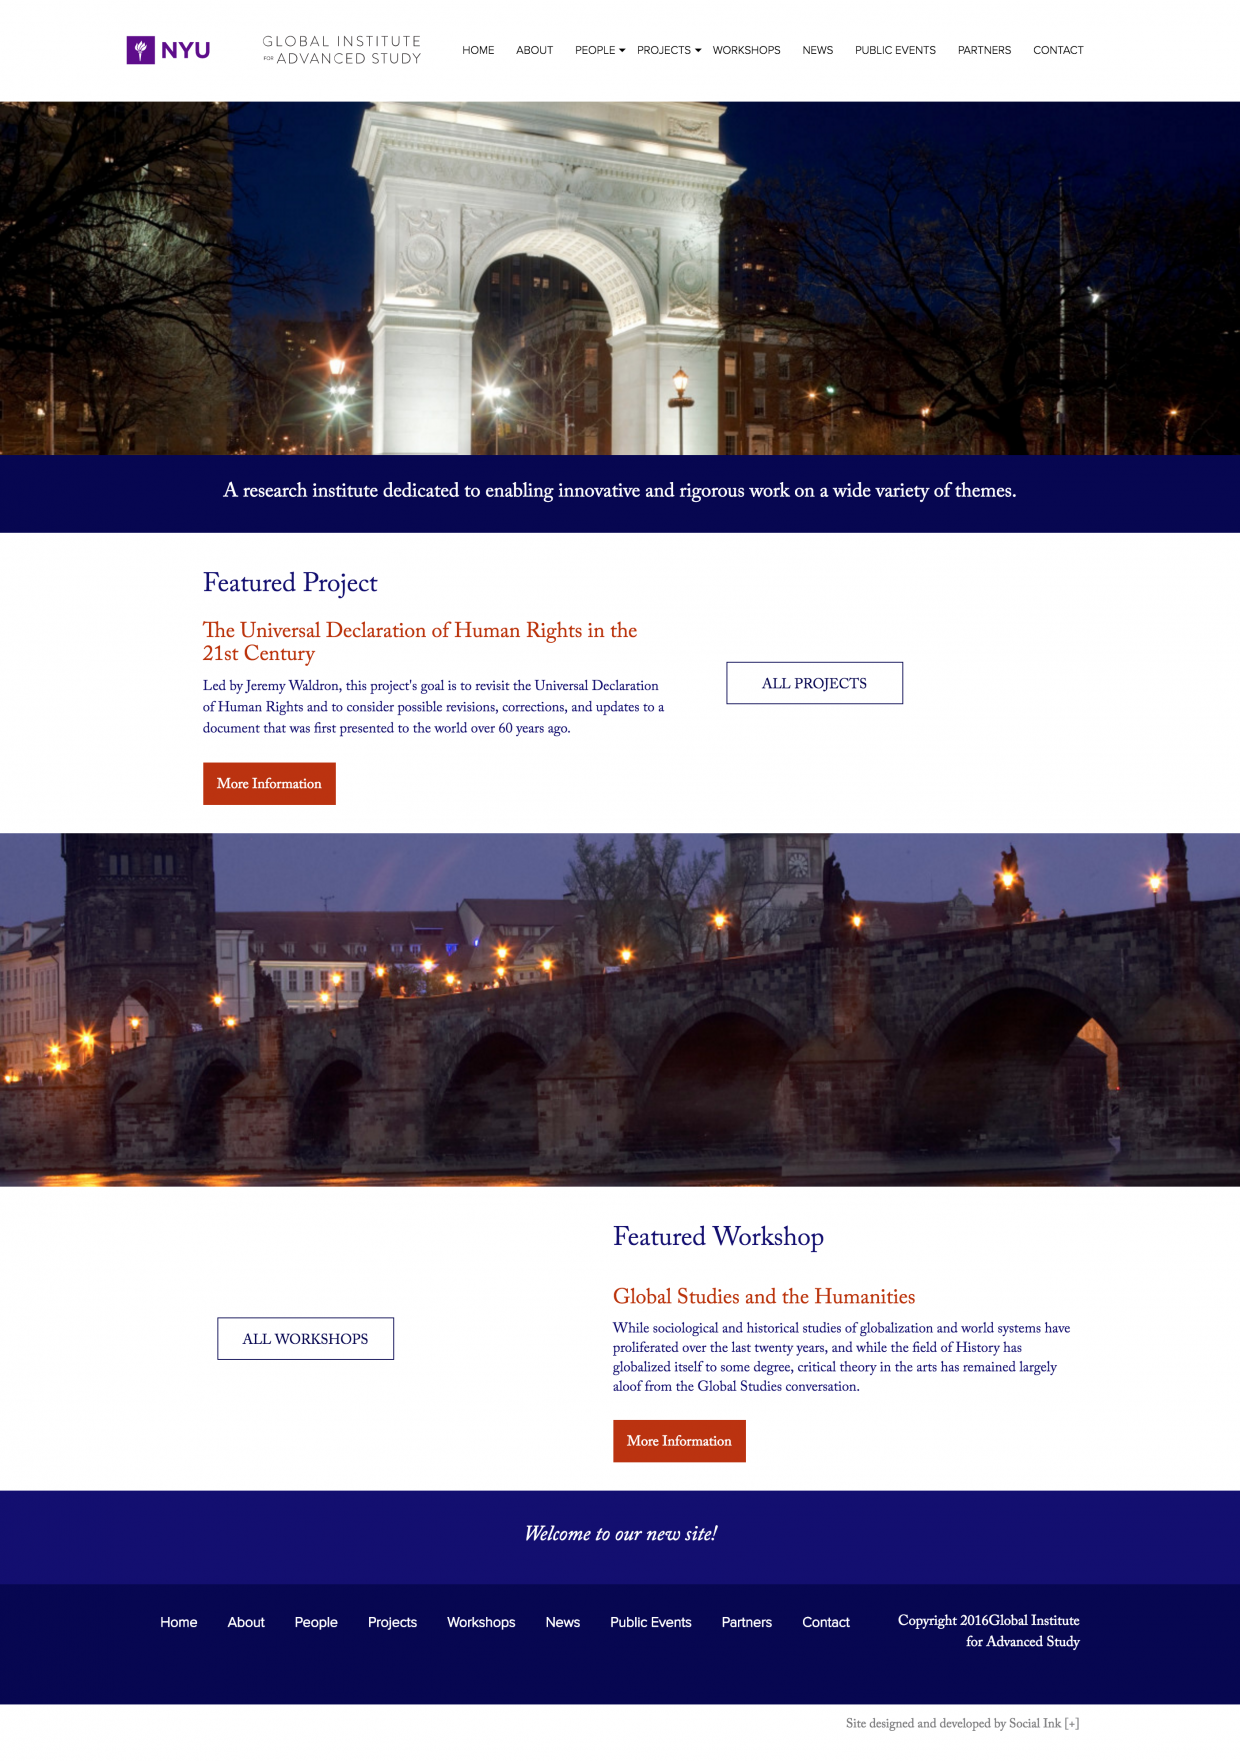 Global Institute for Advanced Study NYU: Gias Homepage